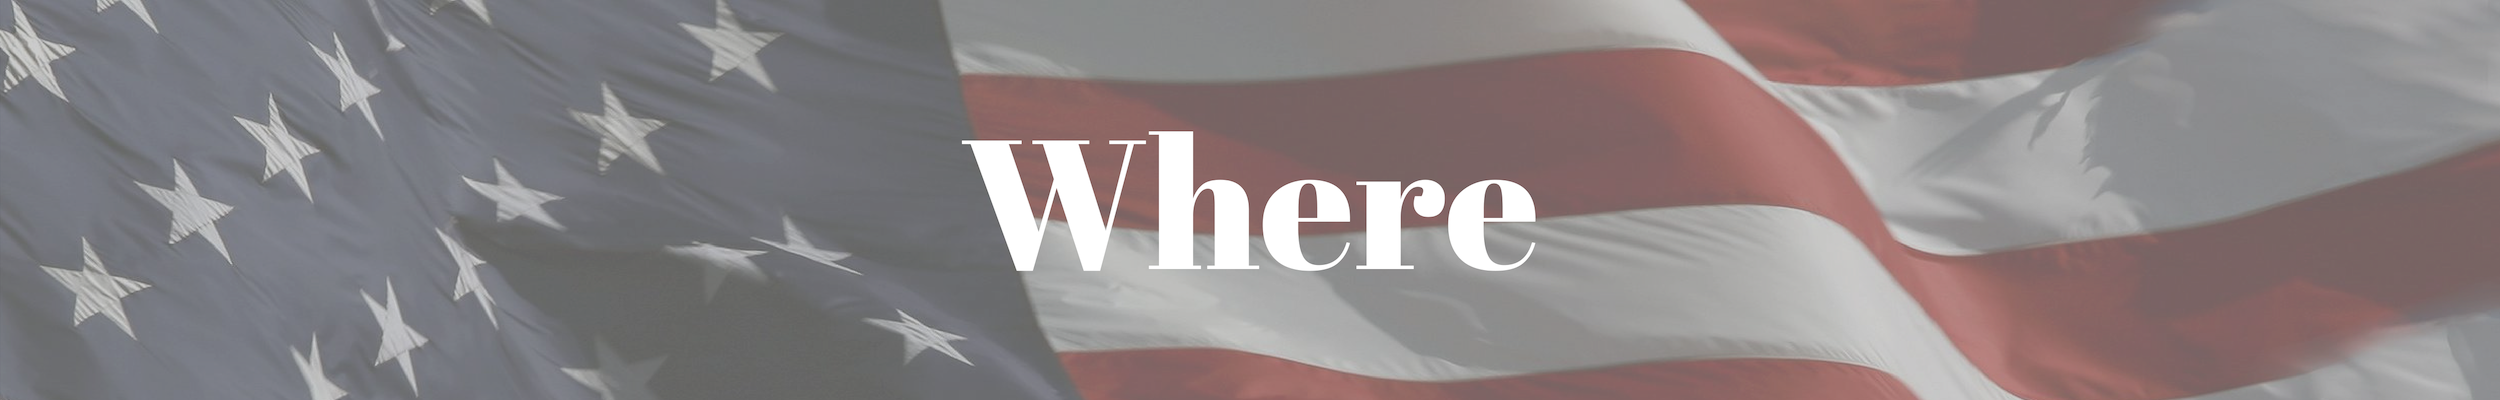 Where Banner (1).png